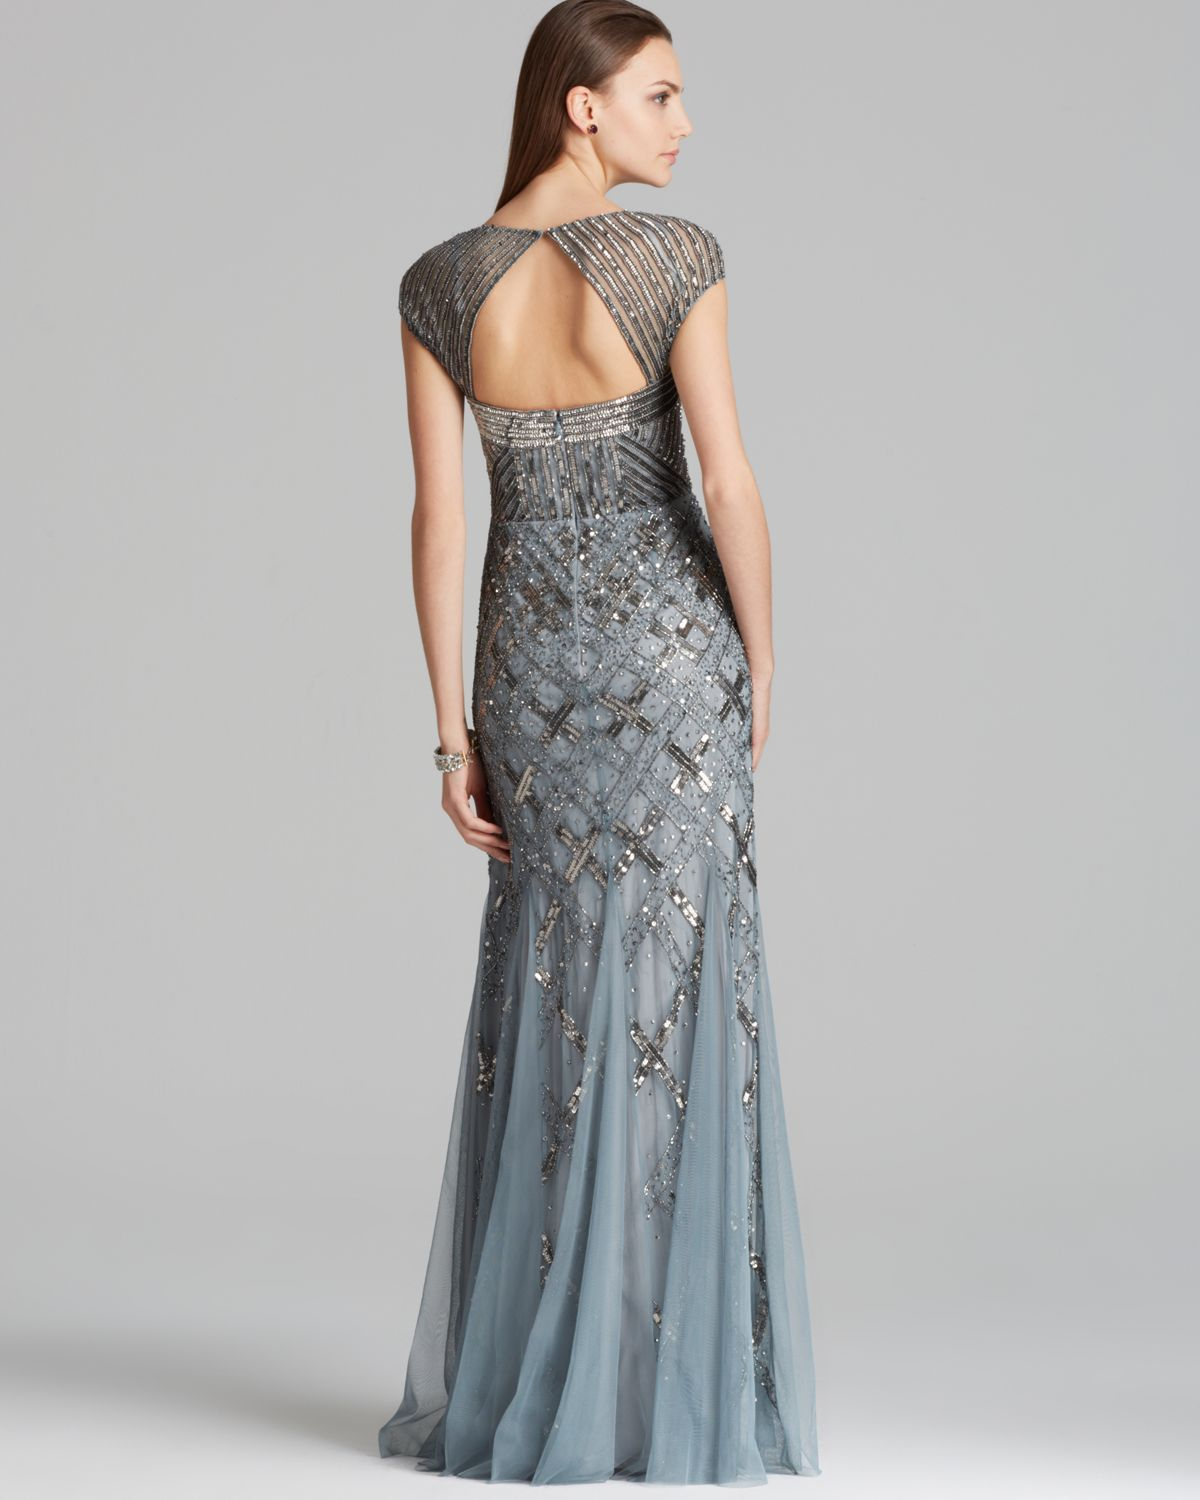 Lyst - Adrianna Papell Gown Cap Sleeve Beaded in Blue